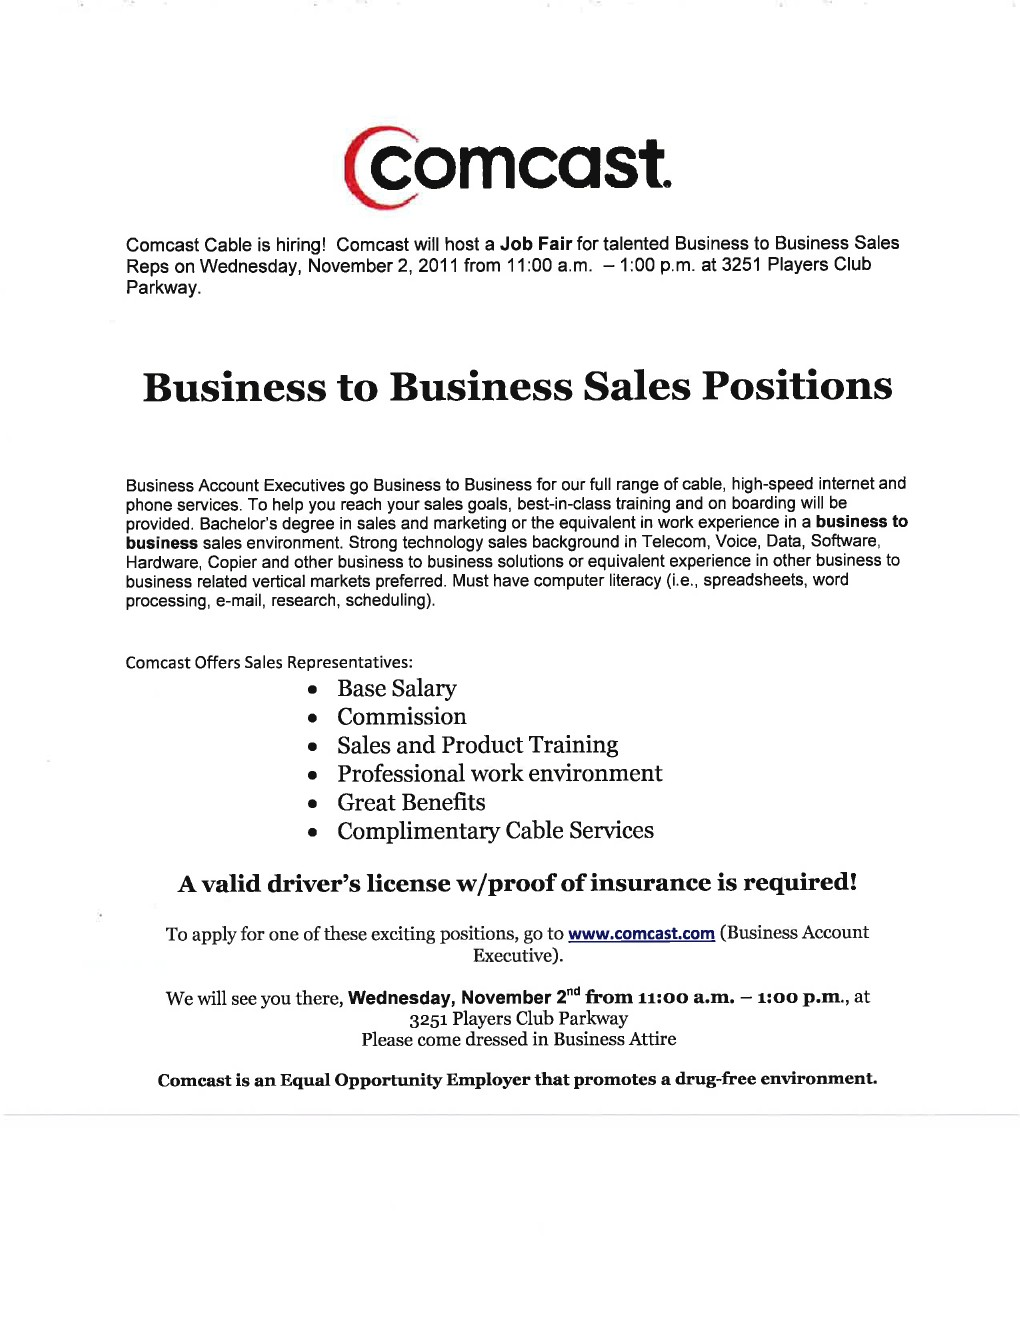 comcast business report essay